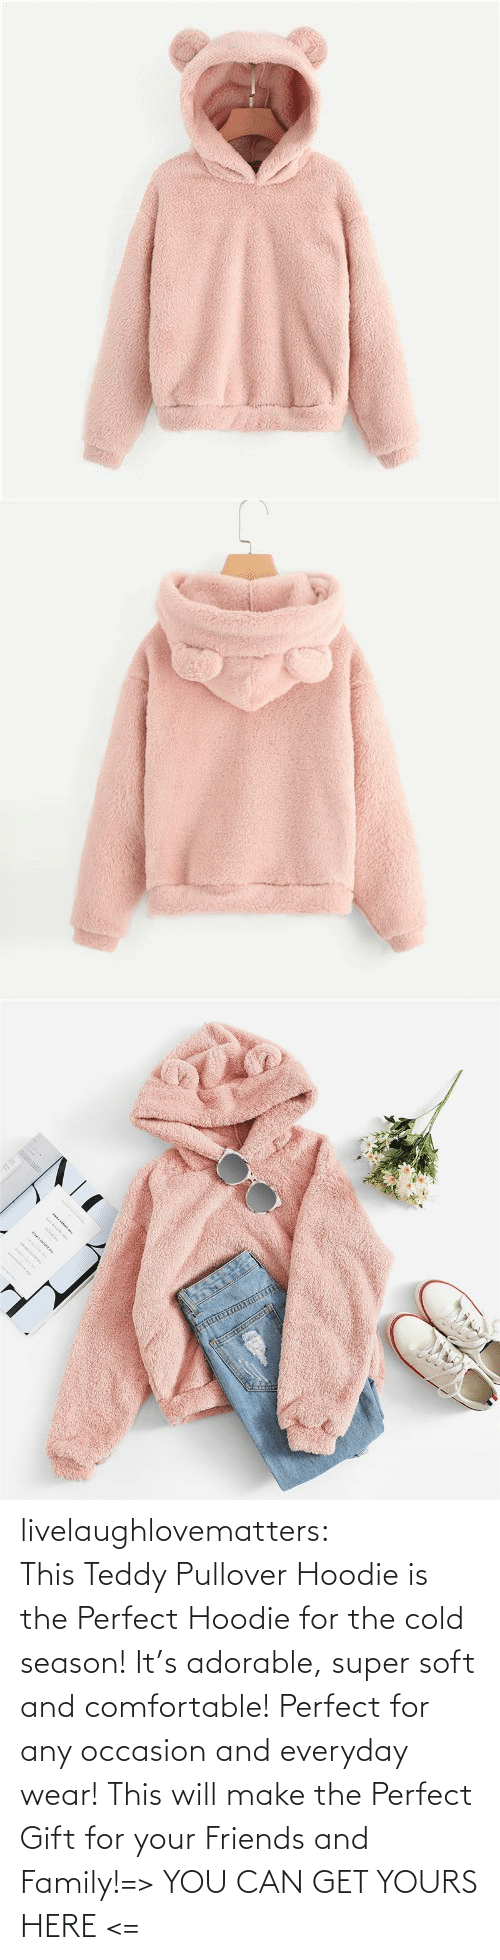 Teddy: www.w. livelaughlovematters:  ThisTeddy Pullover Hoodie is the Perfect Hoodie for the cold season! It's adorable, super soft and comfortable! Perfect for any occasion and everyday wear! This will make the Perfect Gift for your Friends and Family!=> YOU CAN GET YOURS HERE <=